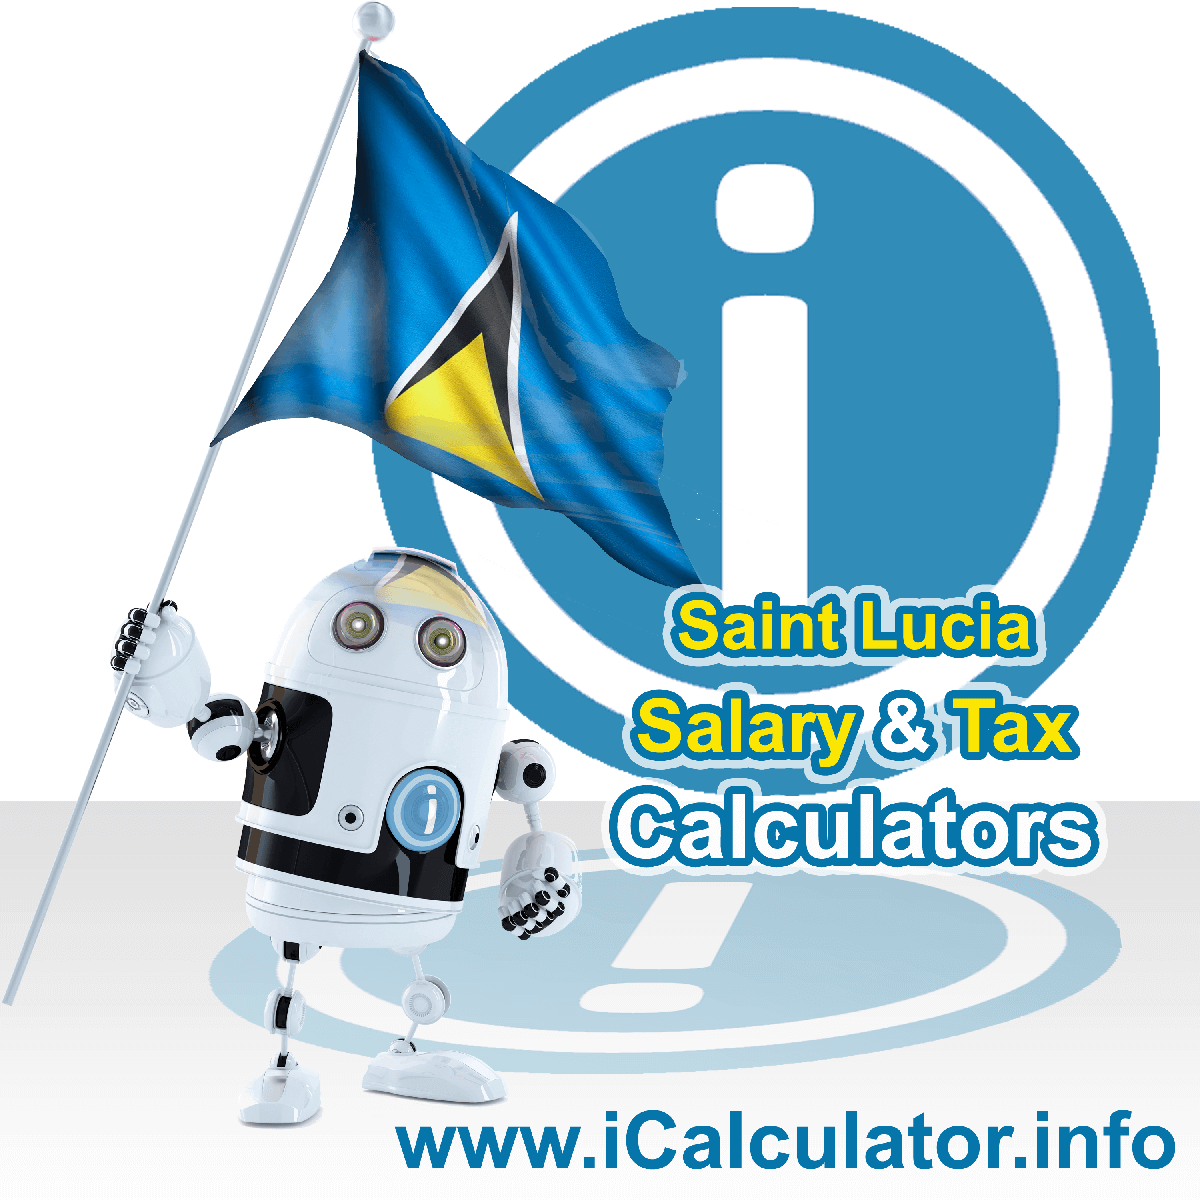 Saint Lucia Tax Calculator. This image shows the Saint Lucia flag and information relating to the tax formula for the Saint Lucia Salary Calculator